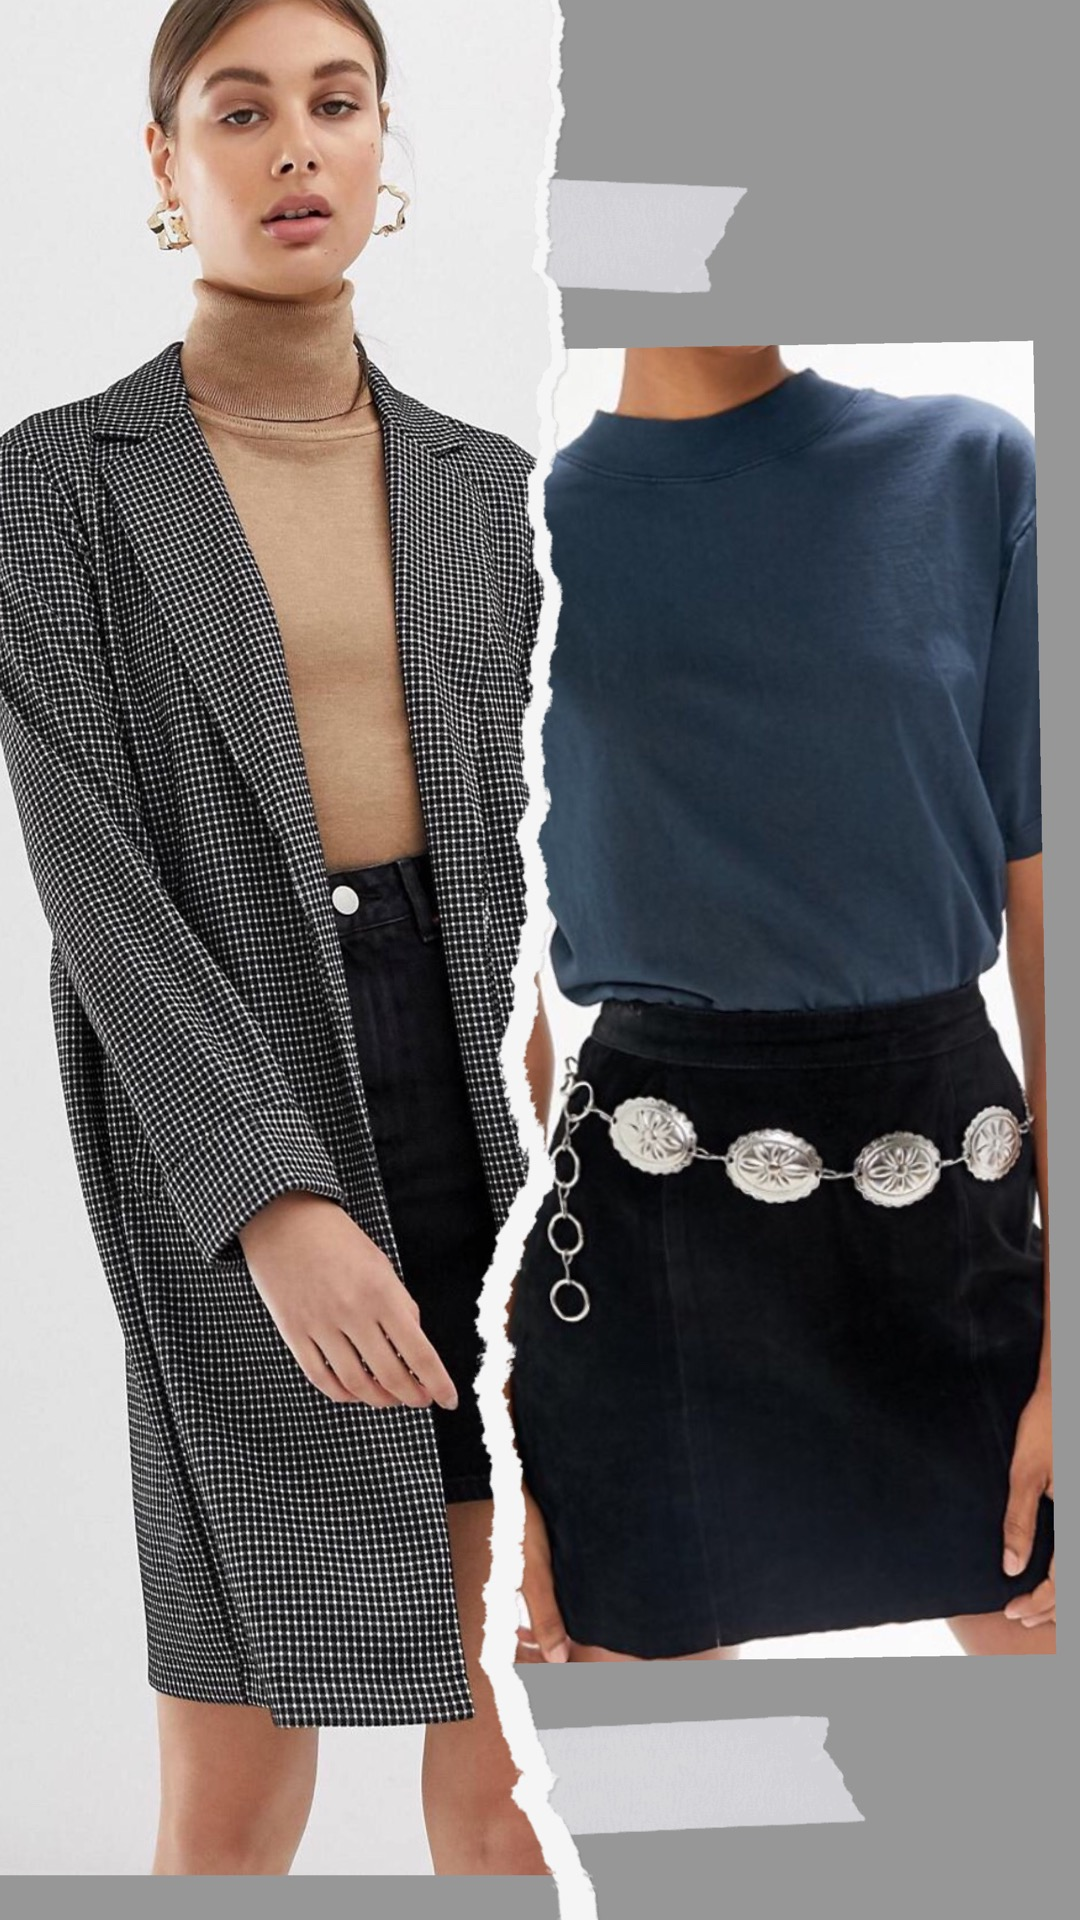 - ASOS:Pieces check lightweight spring coat$60.00Urban Outfitters:Western Chain Belt$29.00